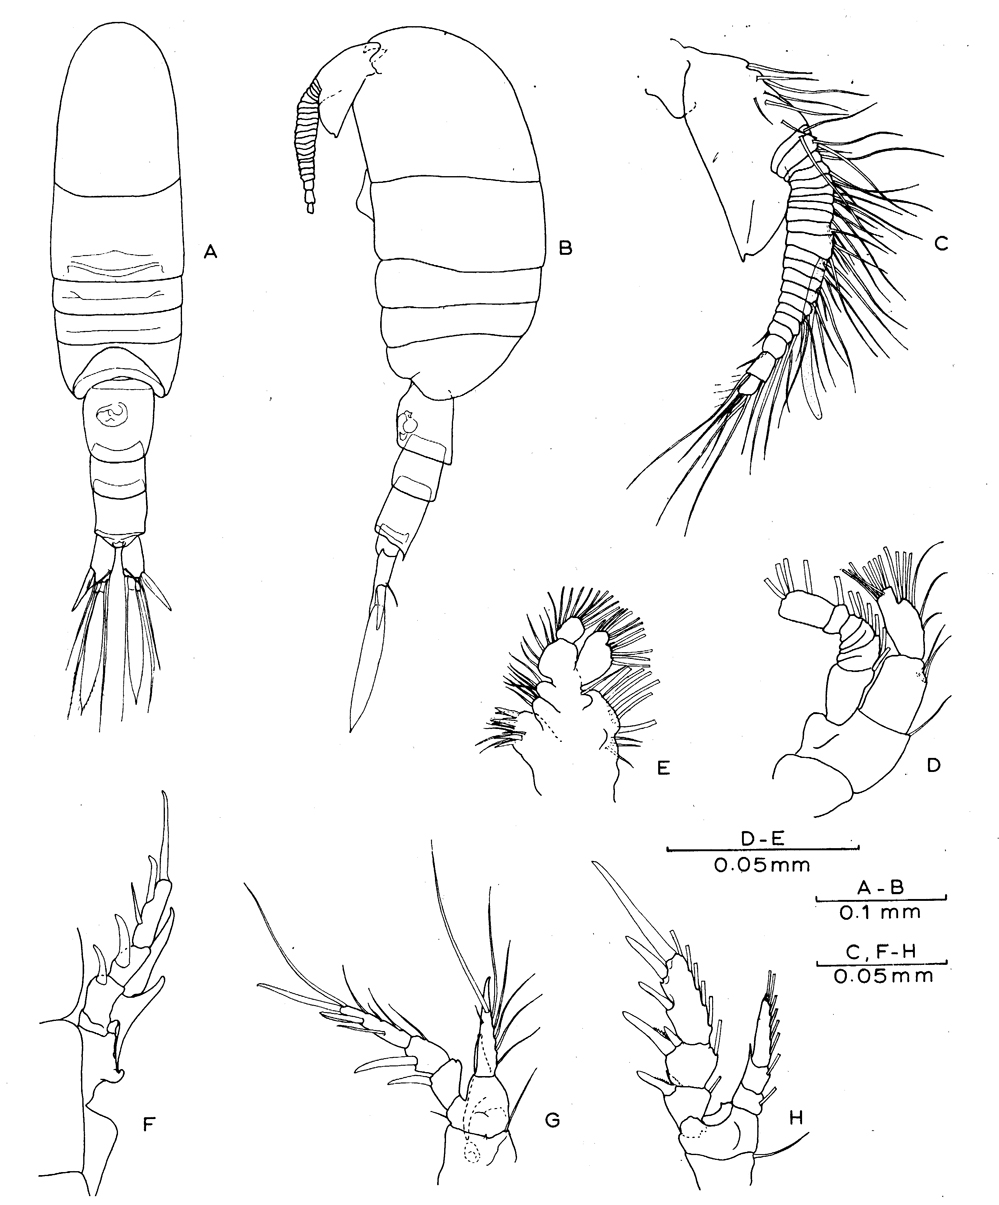 Species Placocalanus nannus - Plate 1 of morphological figures